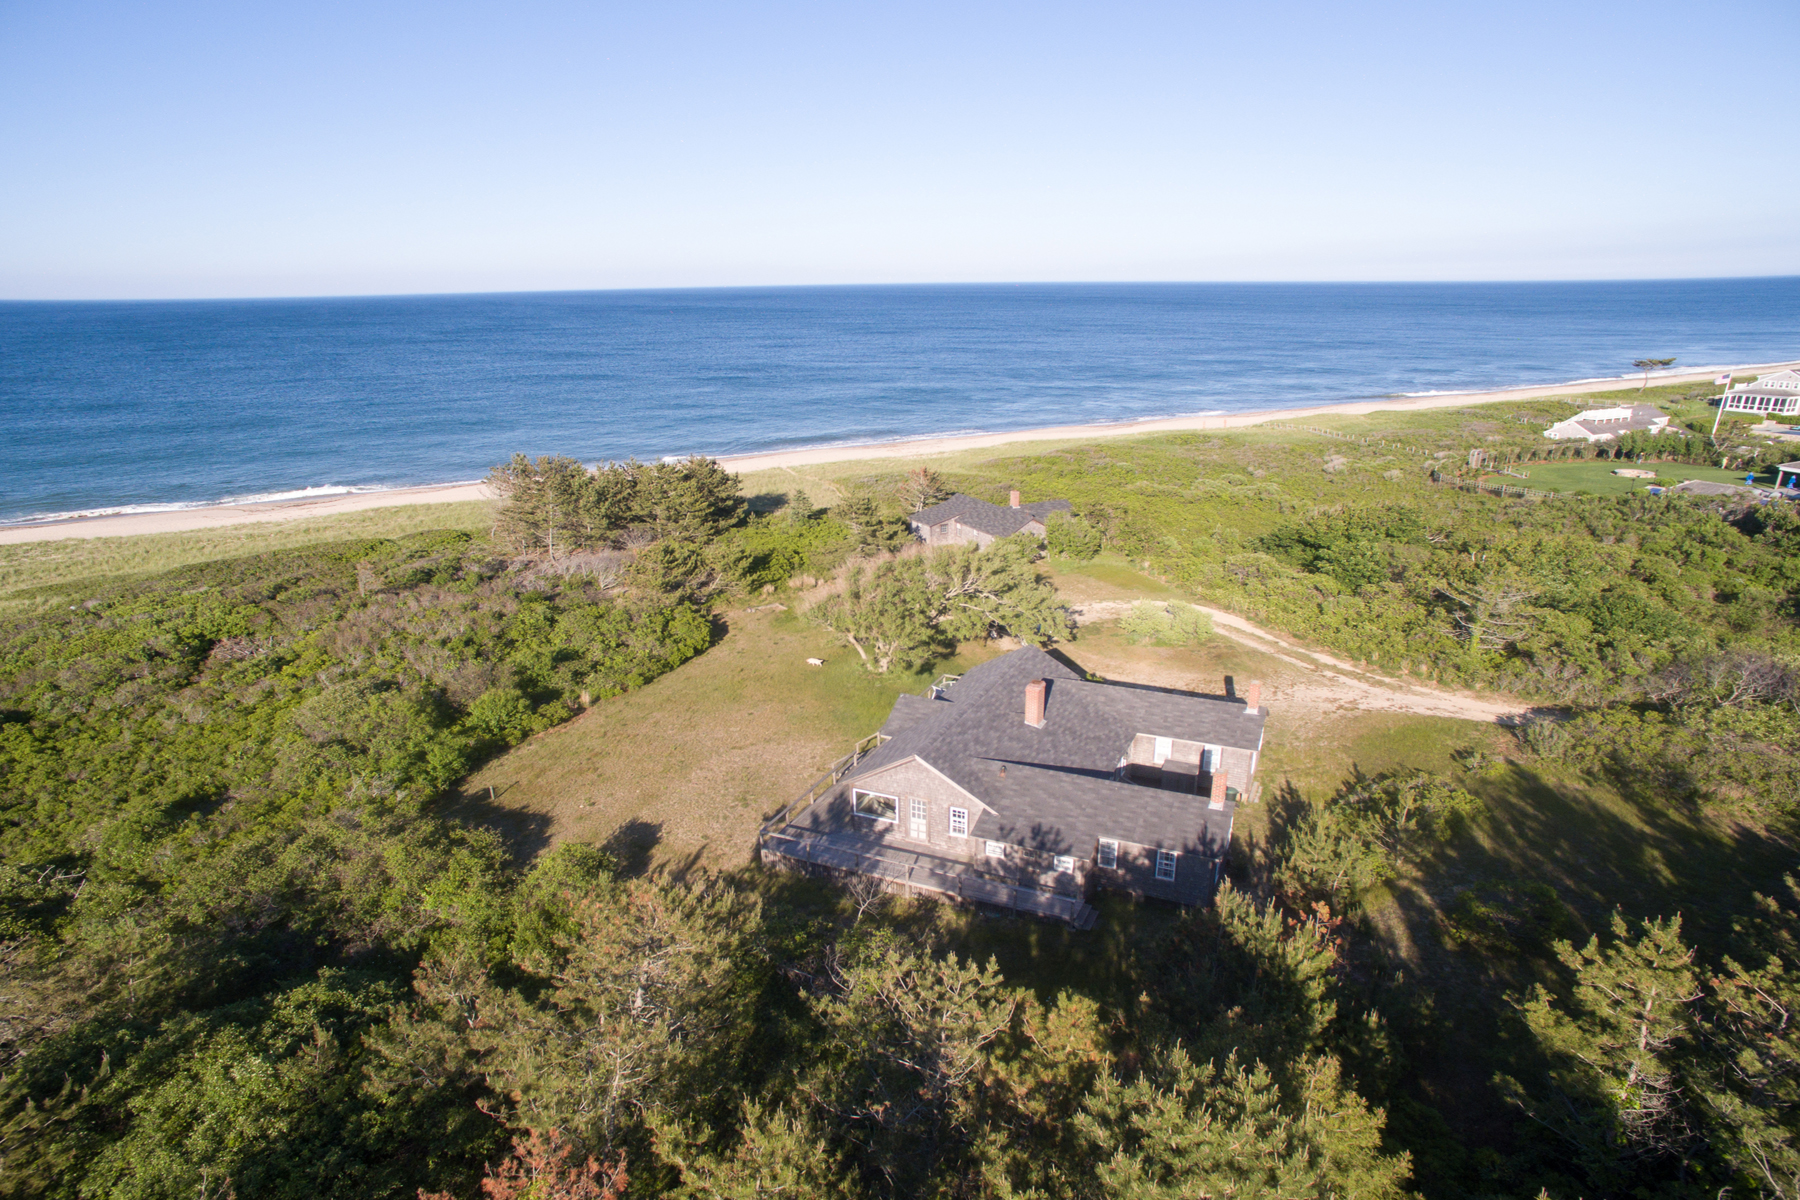 Single Family Home for Sale at Quiet Stretch of Paradise 17 Squam Road Nantucket, Massachusetts, 02554 United States